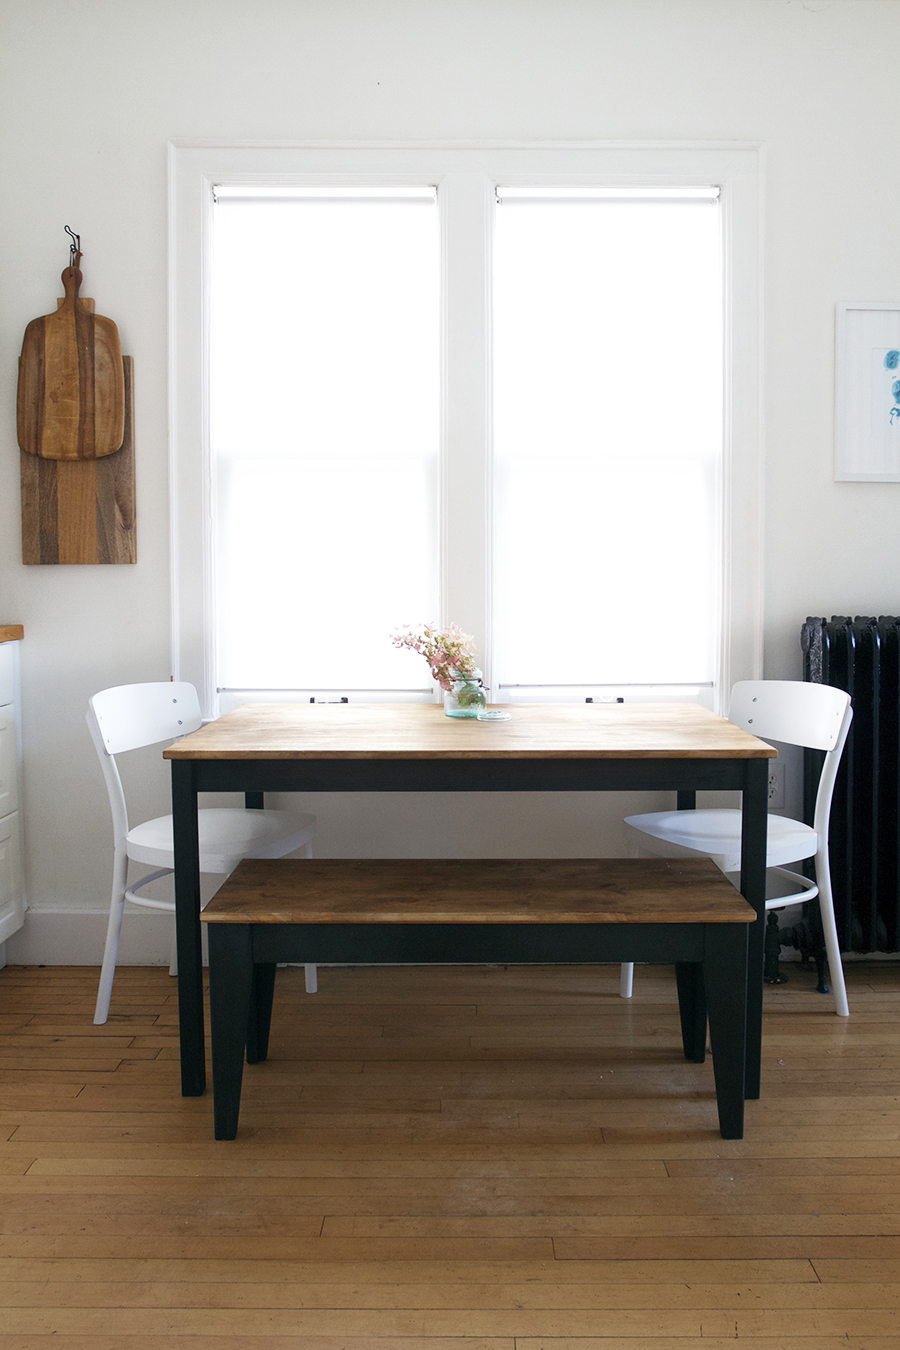 Table and Bench Makeover using Amy Howard at Home paints and waxes